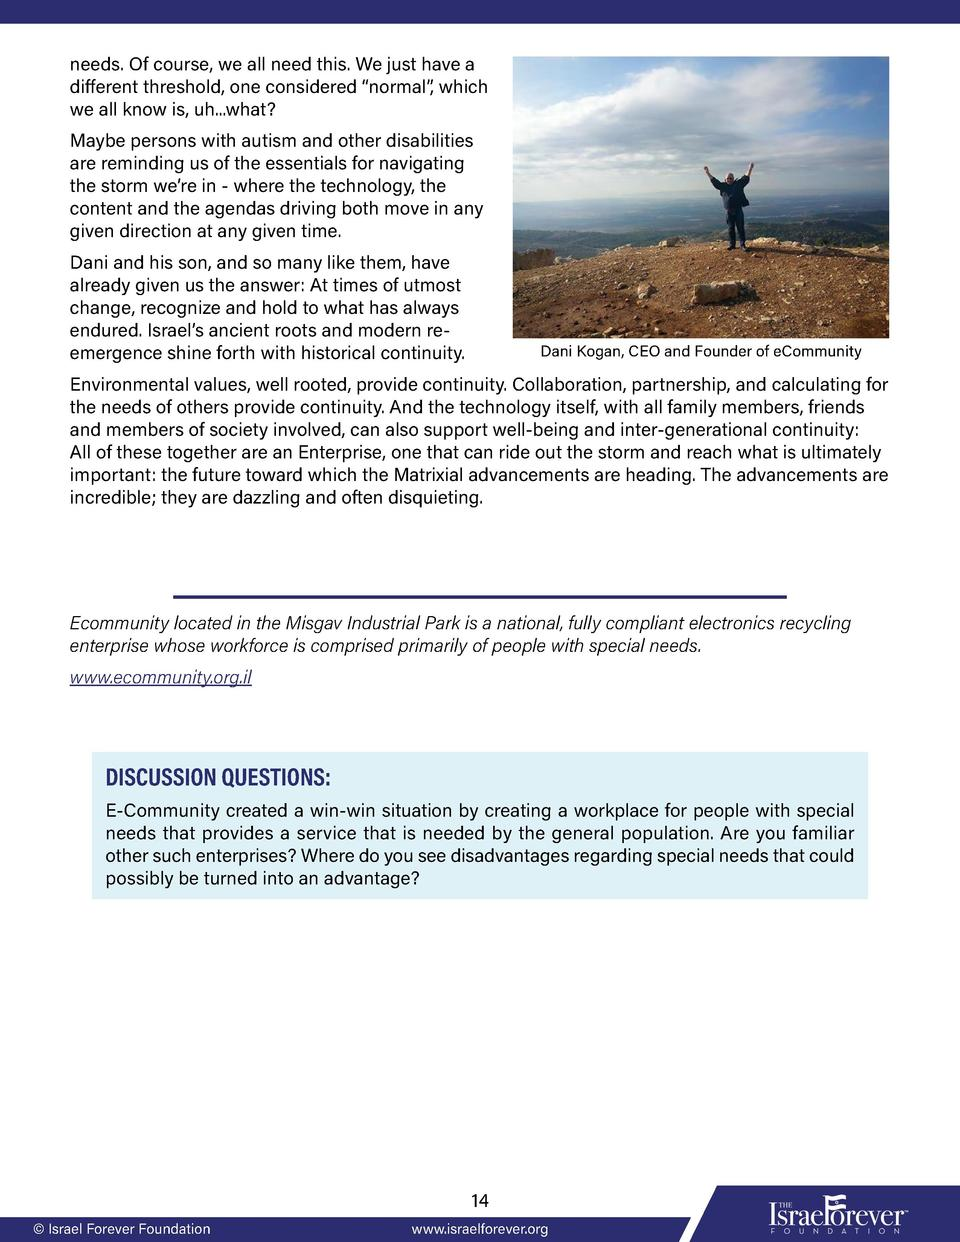 Inclusive Israel: Resource Packet: The Israel Forever Foundation